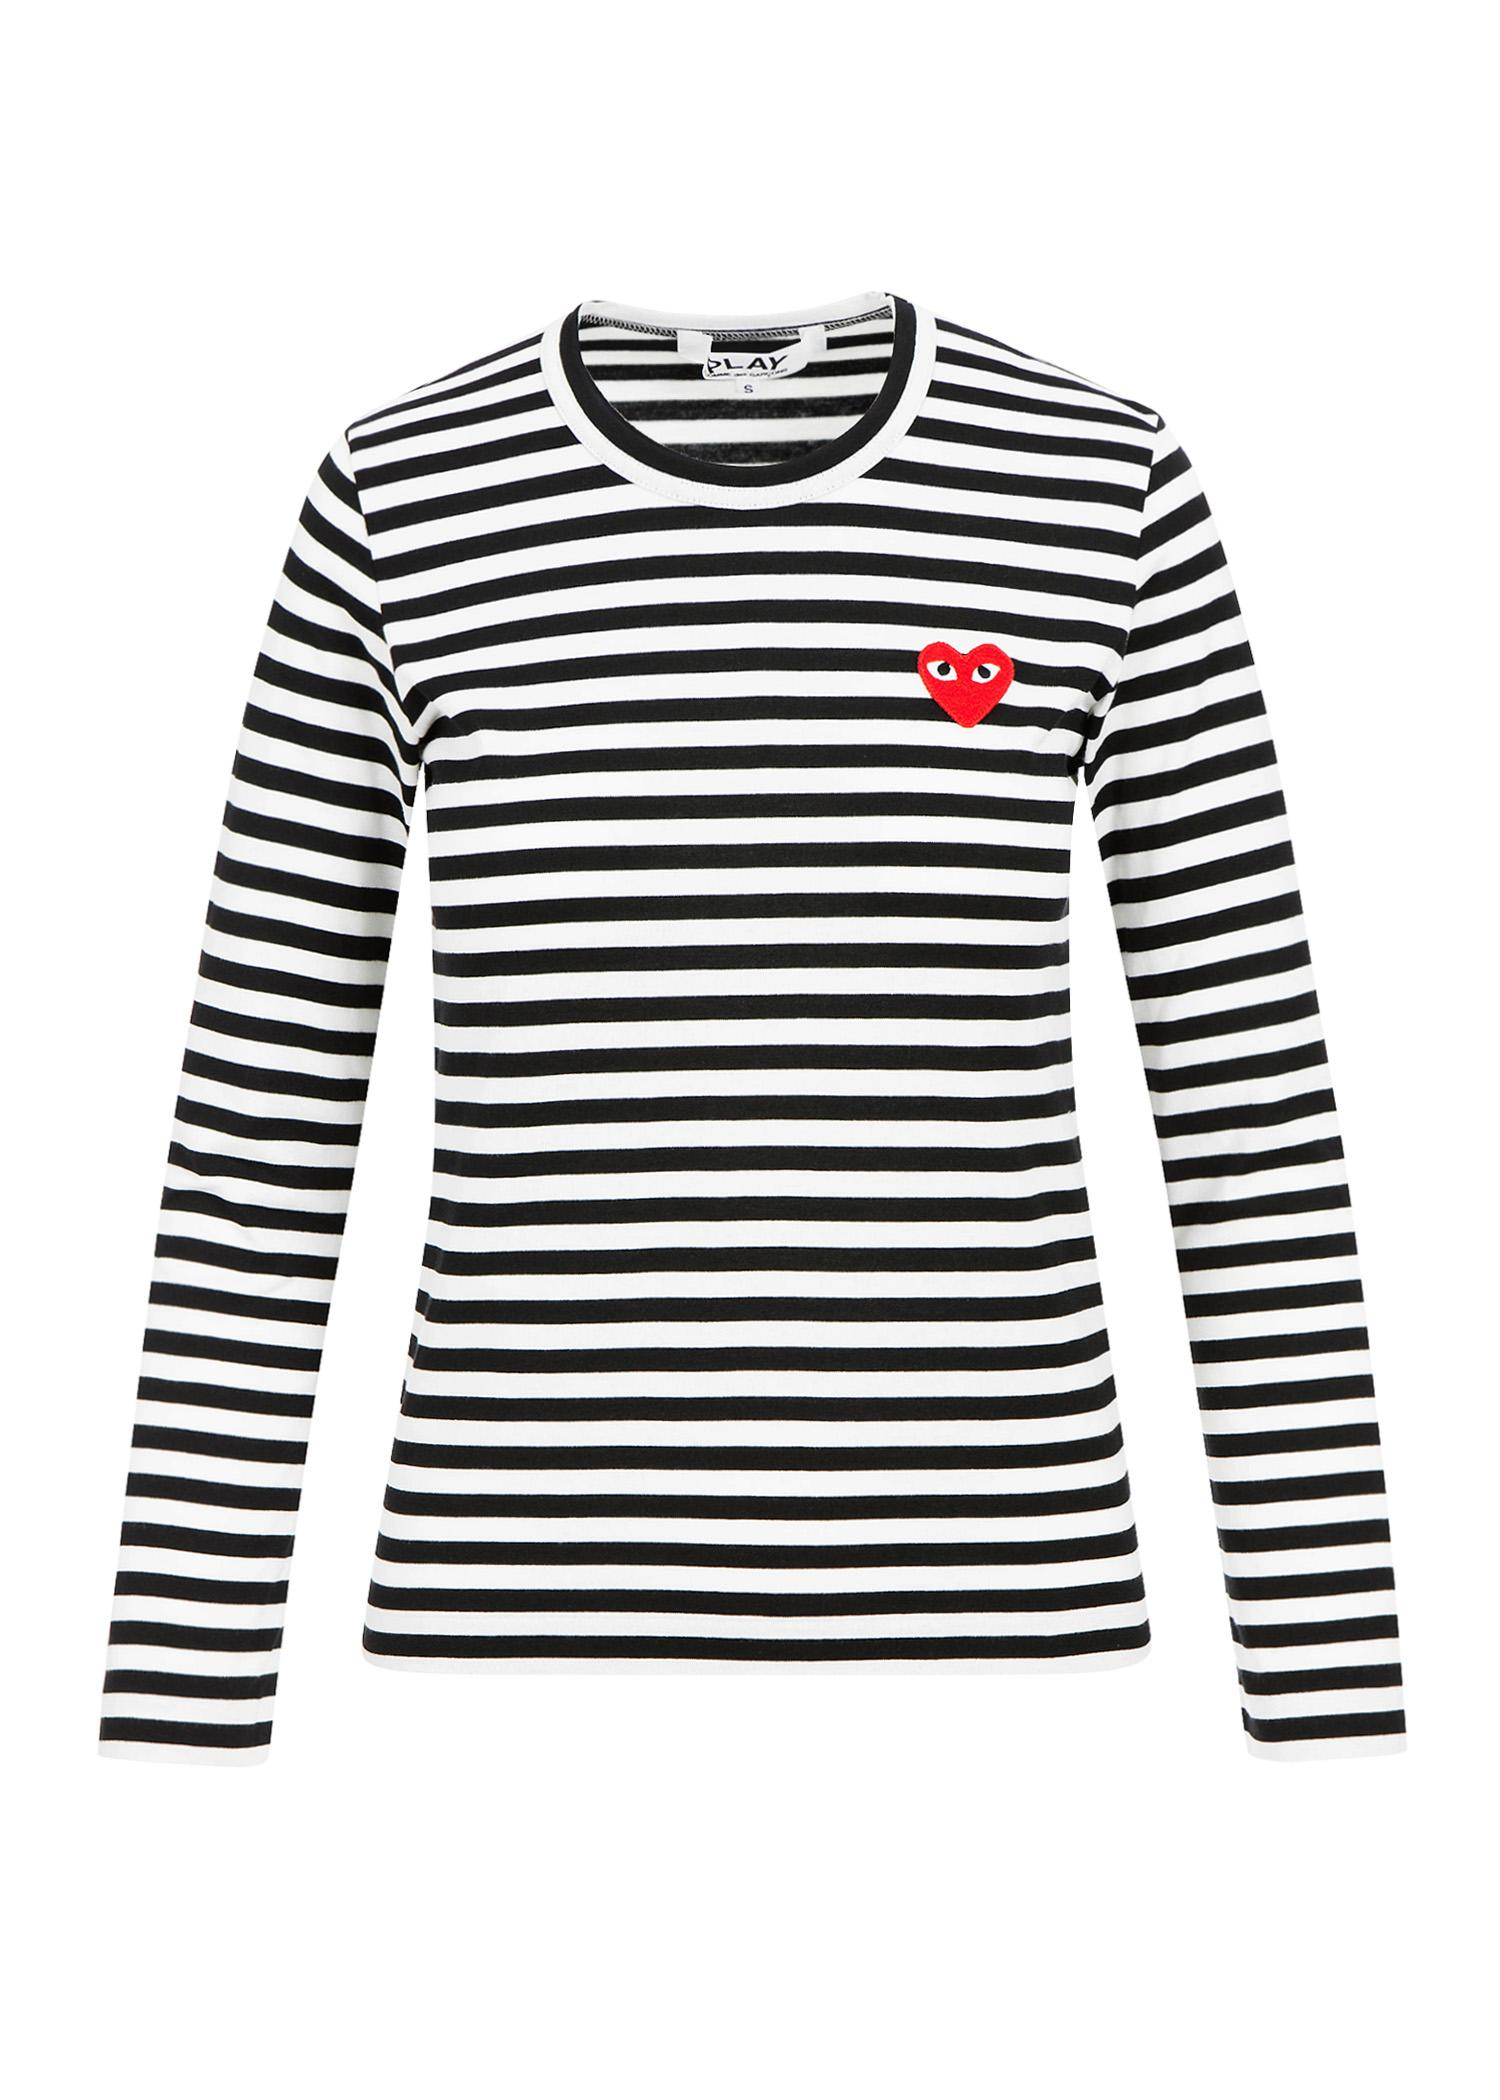 a94f57dd9d Comme Des GarÇOns Play Red Heart Patch Striped Ls T-Shirt In Black/White